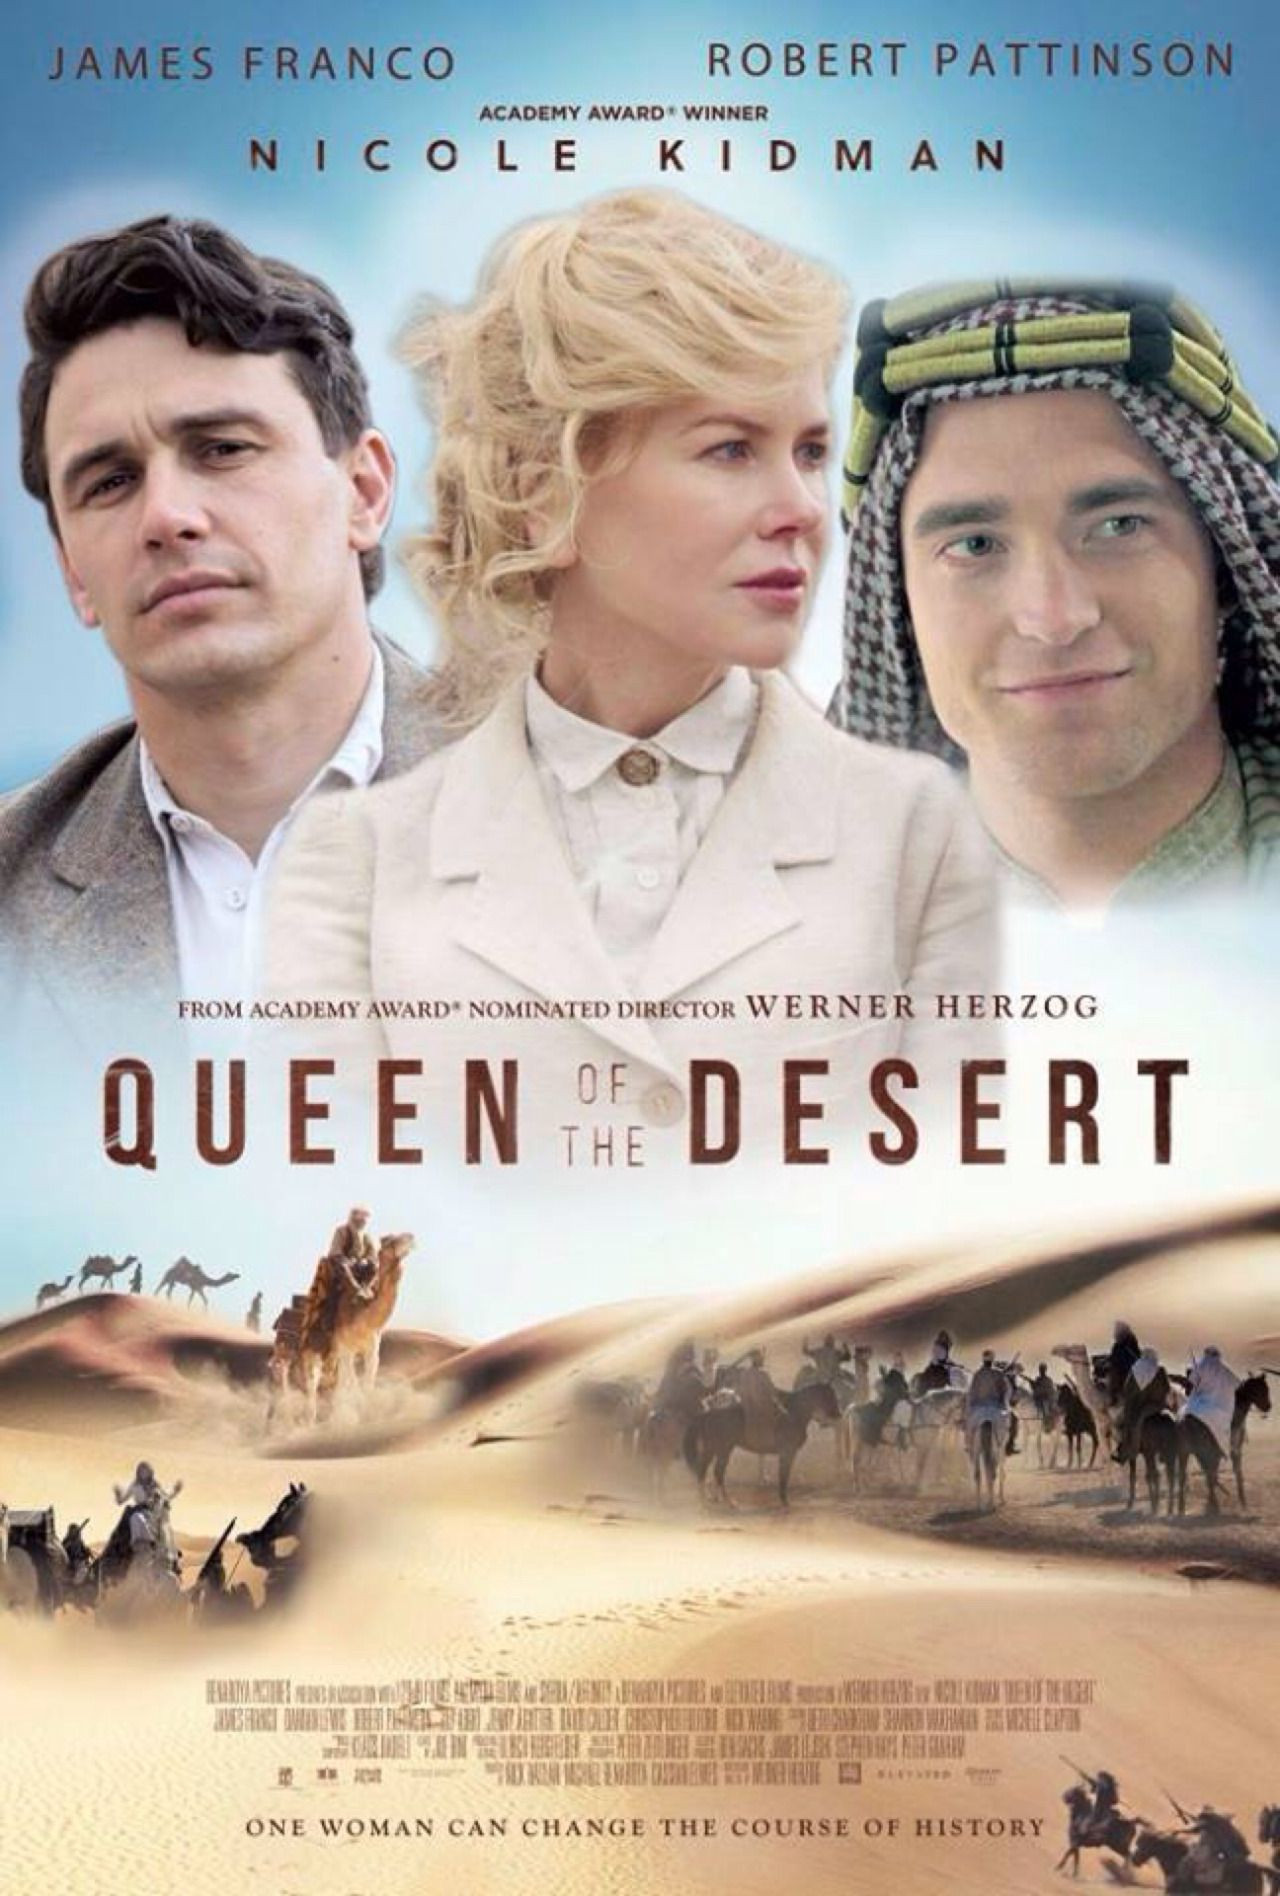 Queen Of The Dessert  Werner Herzog 2015 Queen of the Desert [Nicole Kidman